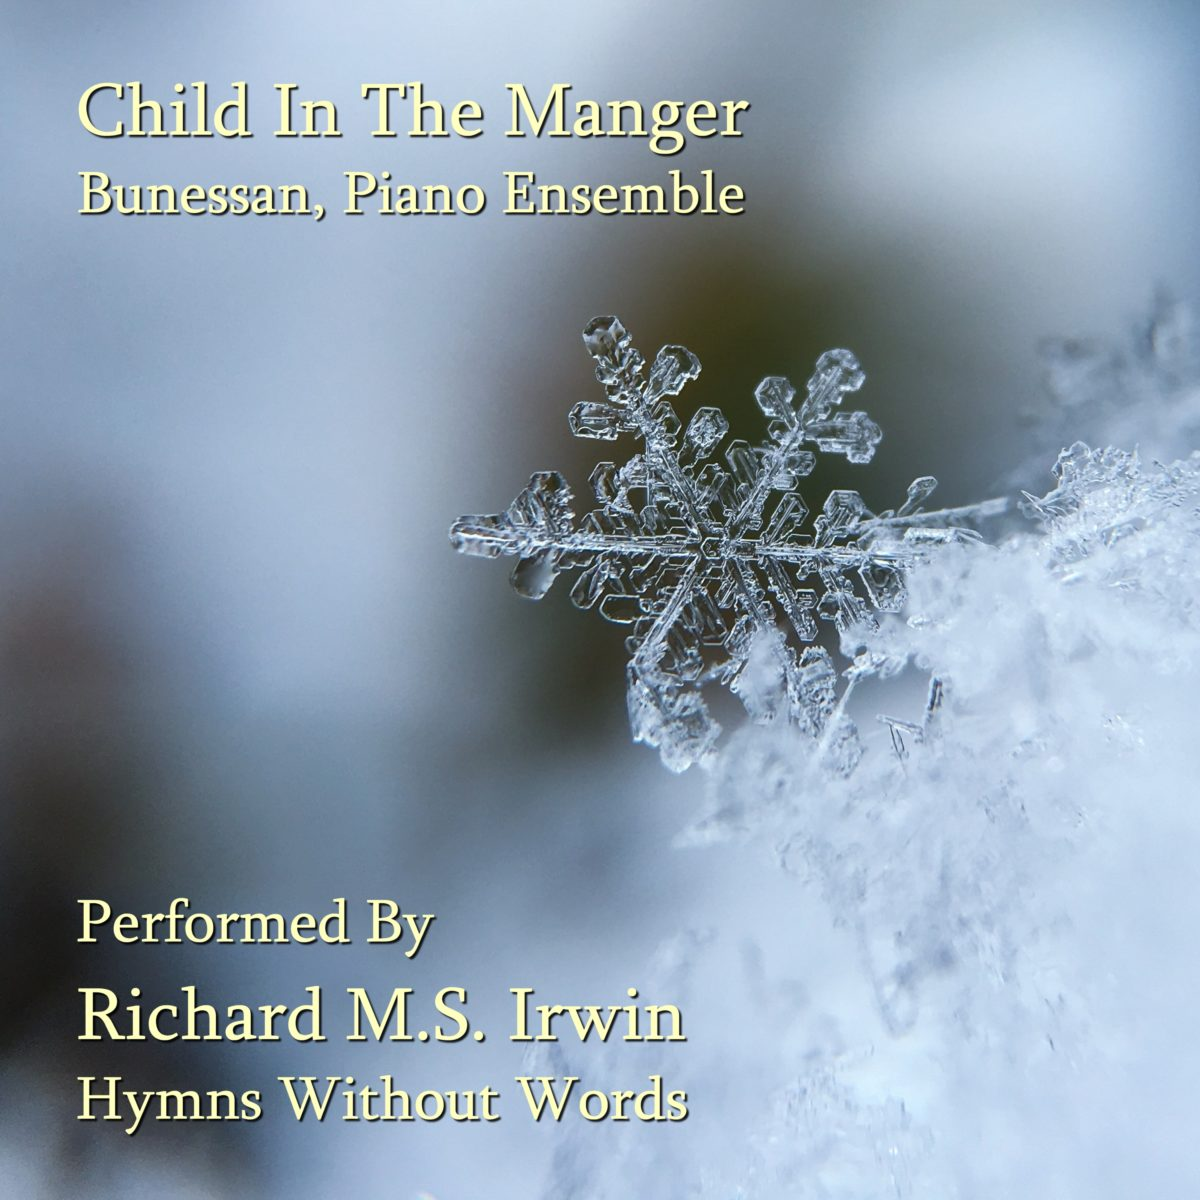 Child In The Manger (Bunessan 3 Verses) – Piano Ensemble